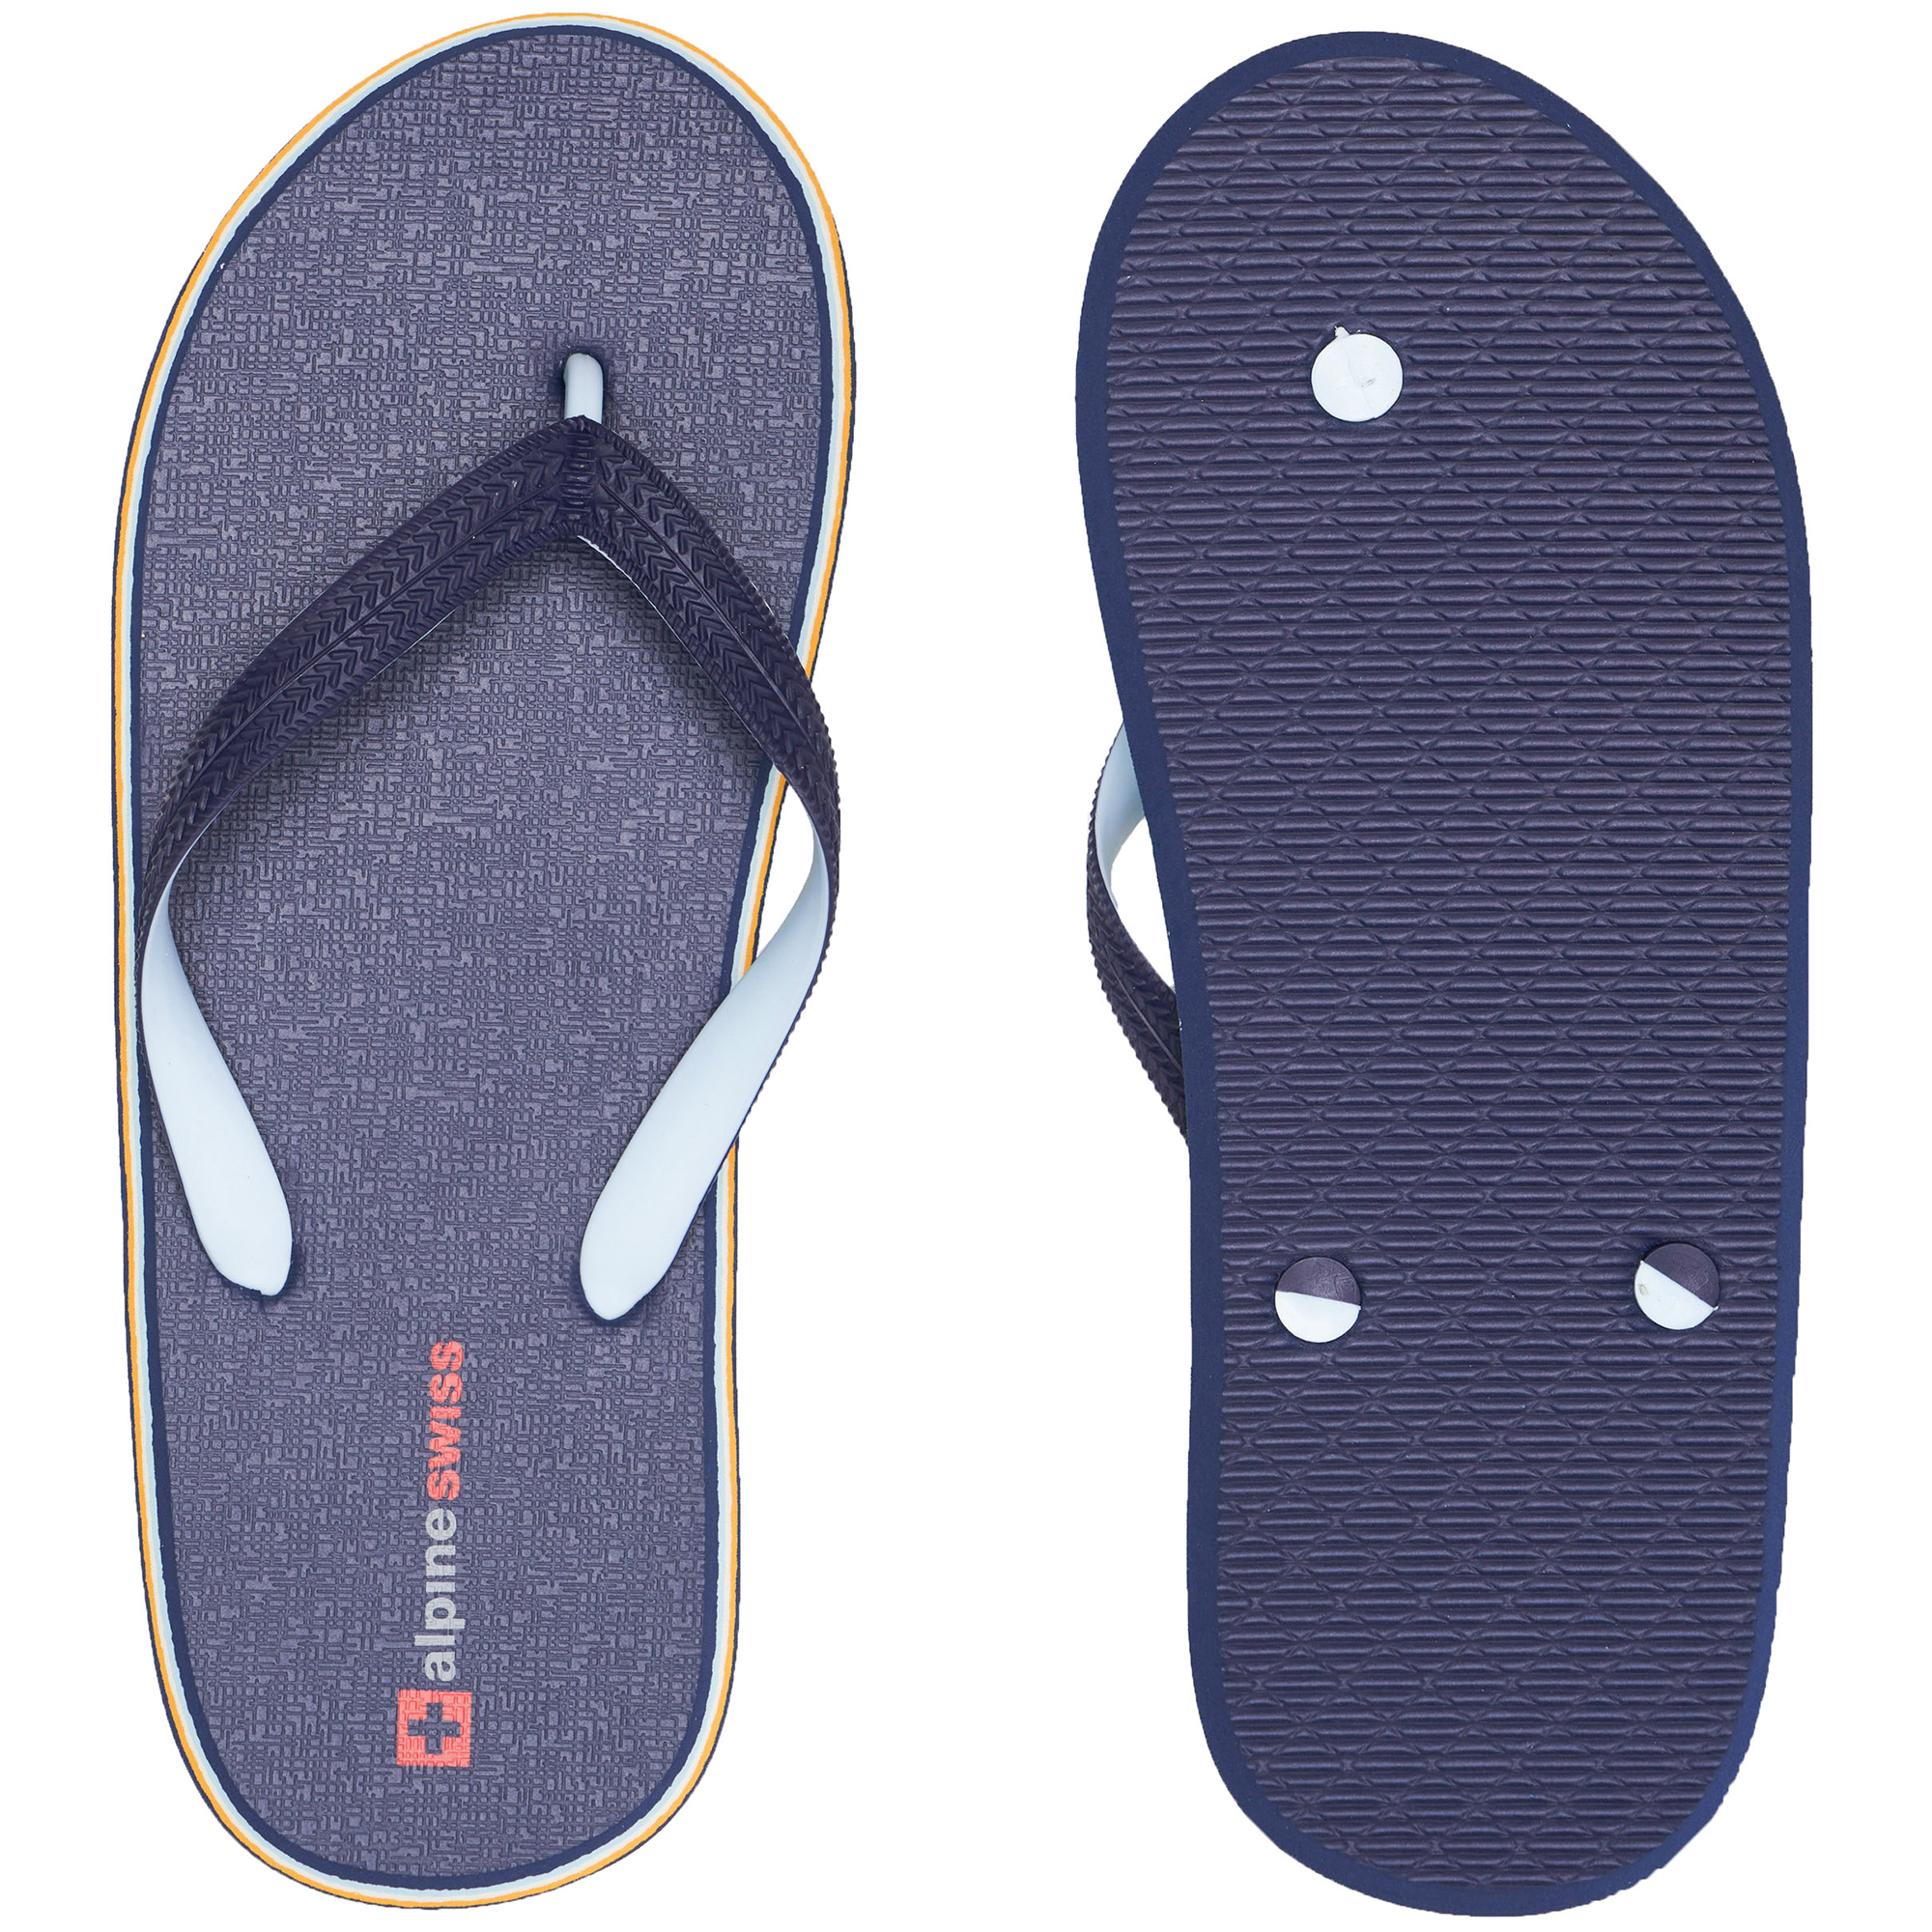 Alpine-Swiss-Mens-Flip-Flops-Beach-Sandals-Lightweight-EVA-Sole-Comfort-Thongs thumbnail 26